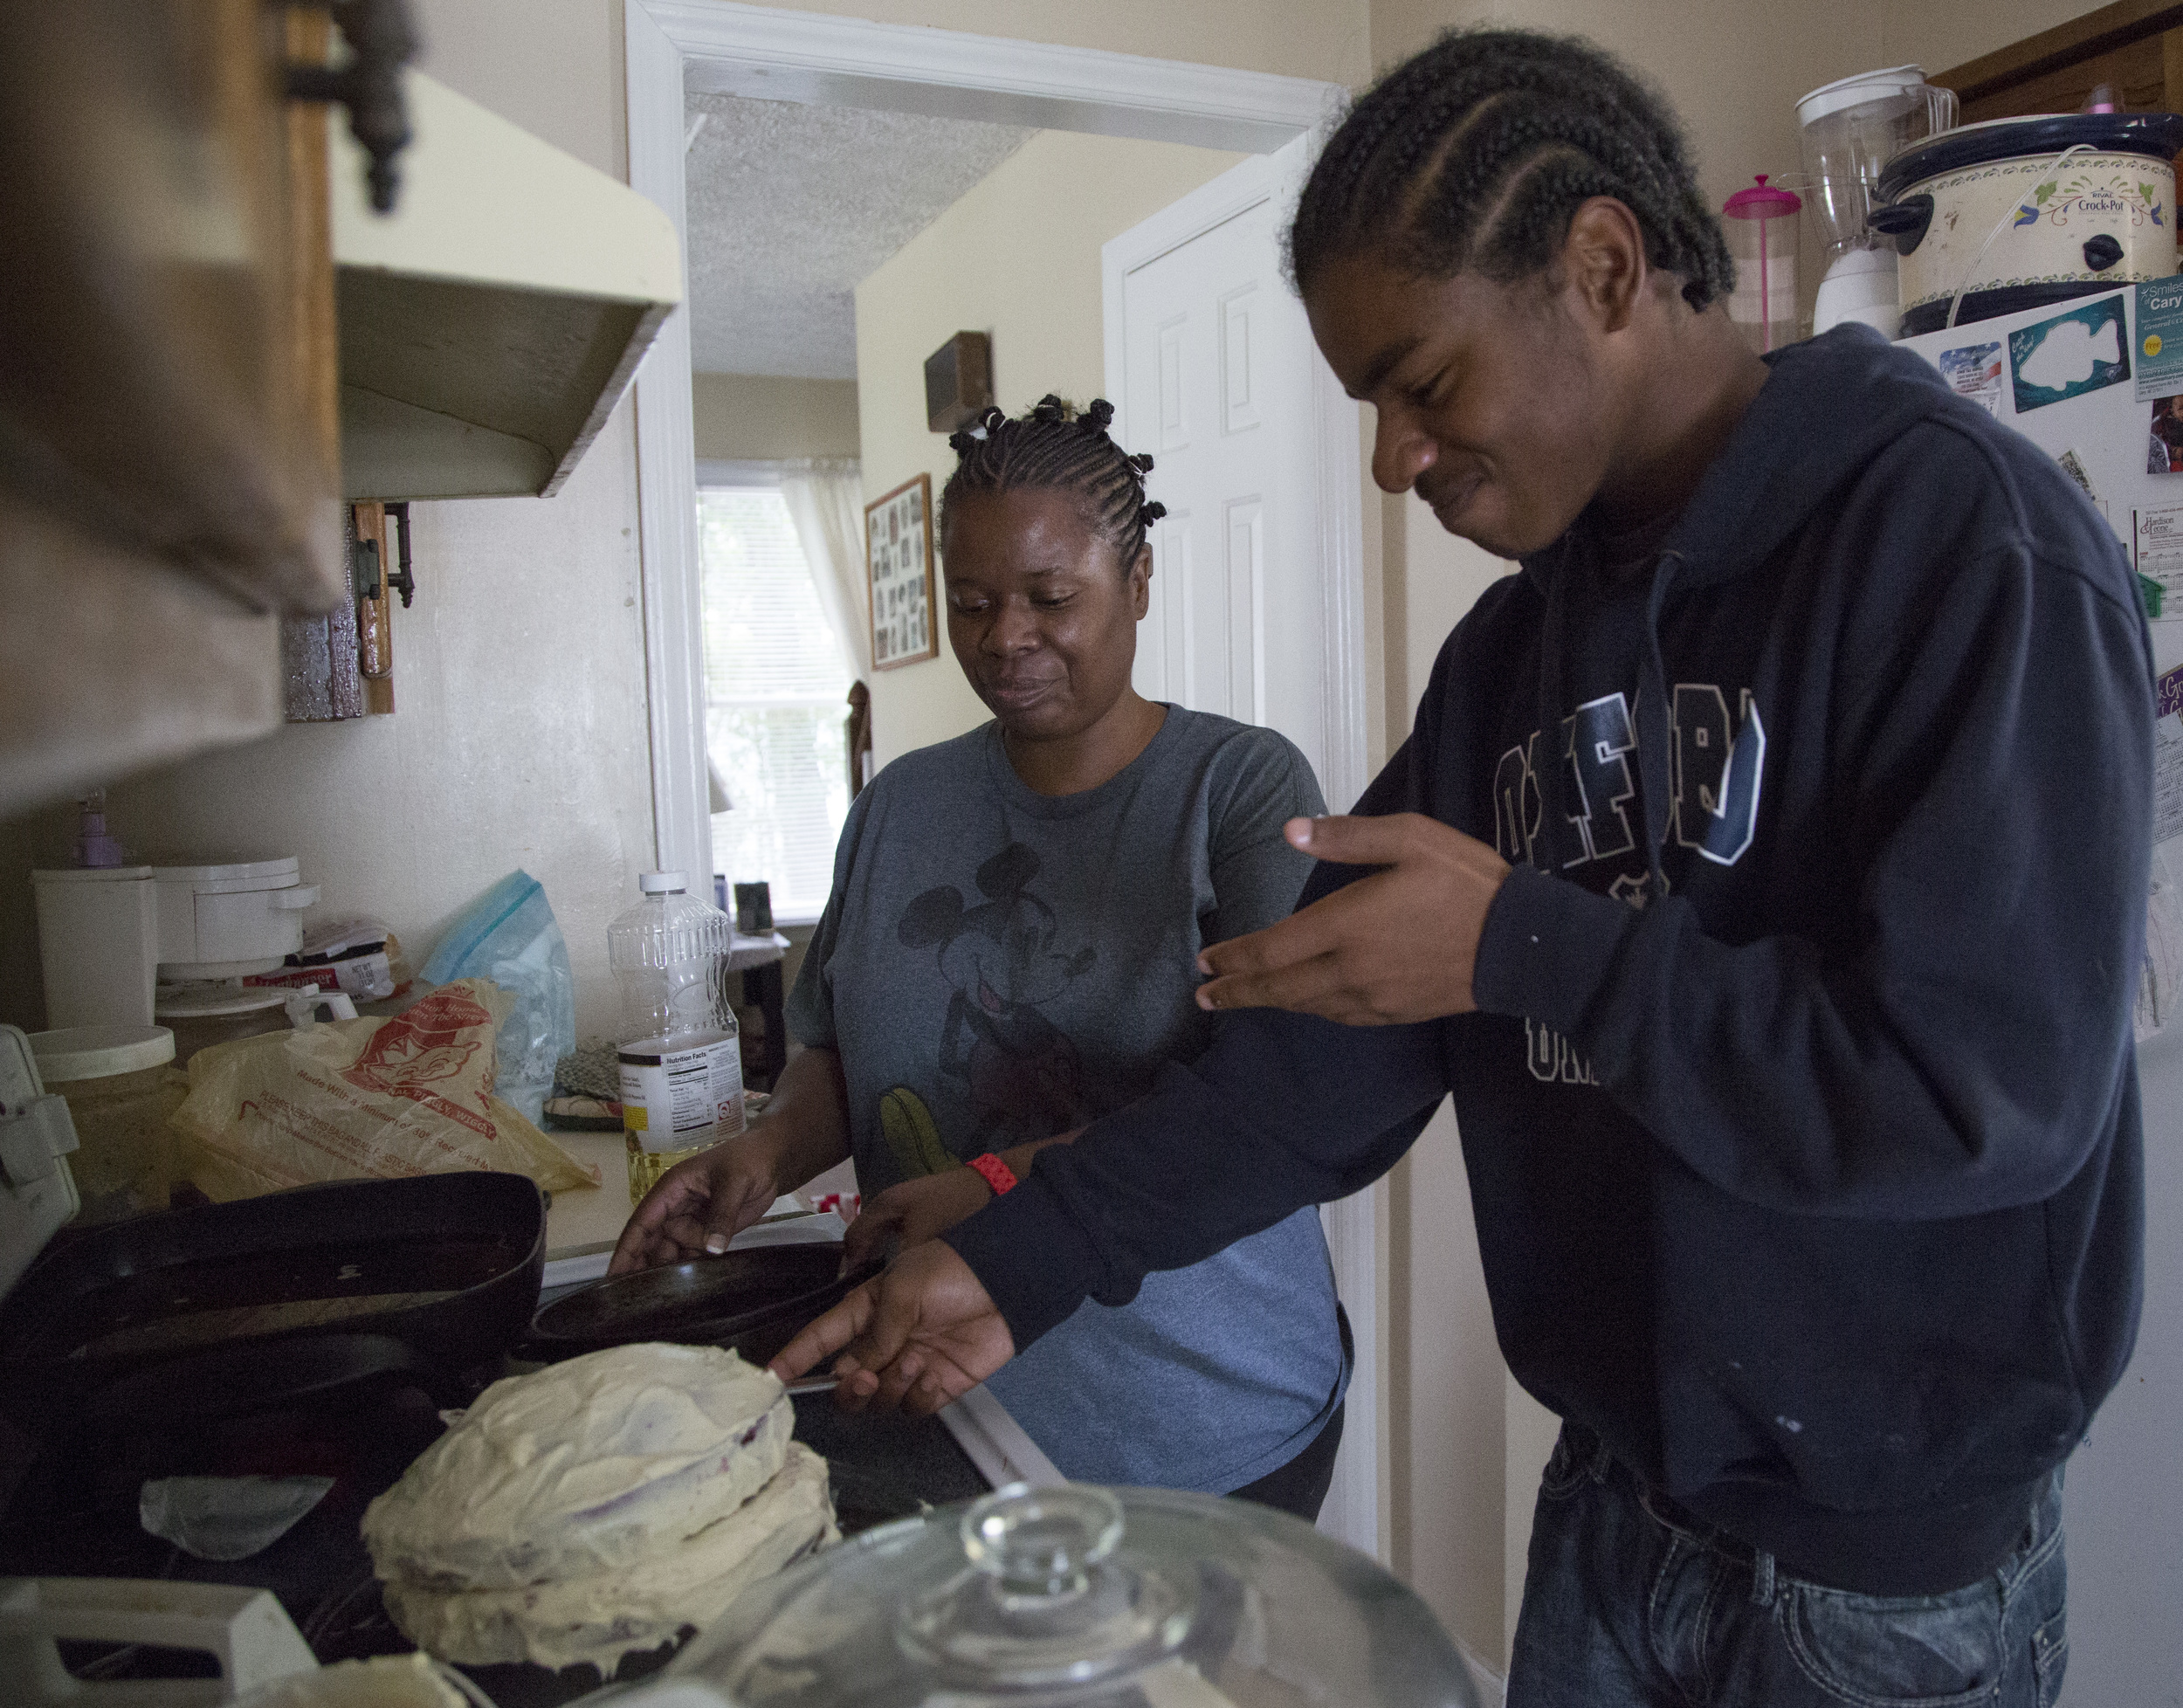 Monica Alexander helps her son, McKinley Patterson, 14, make his birthday cake at their home in Zebulon, N.C., on Wednesday, July 23, 2014.